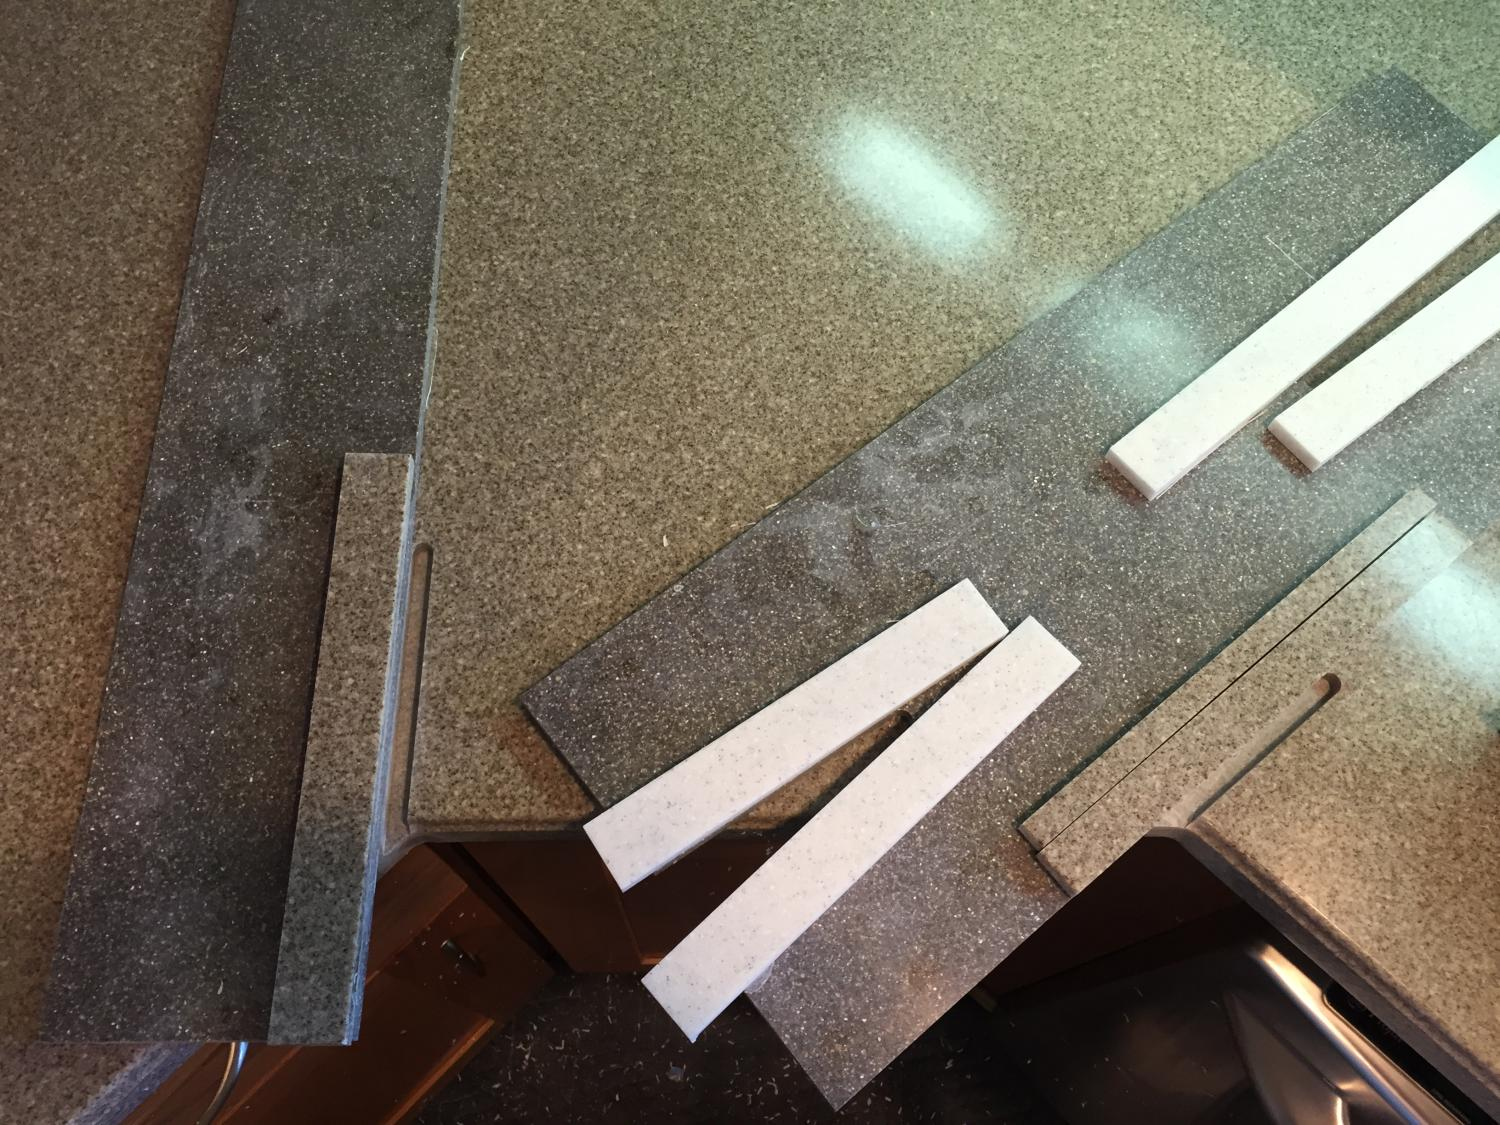 How To Repair Crack In Granite Countertop Countertop Repair Countertop Connection